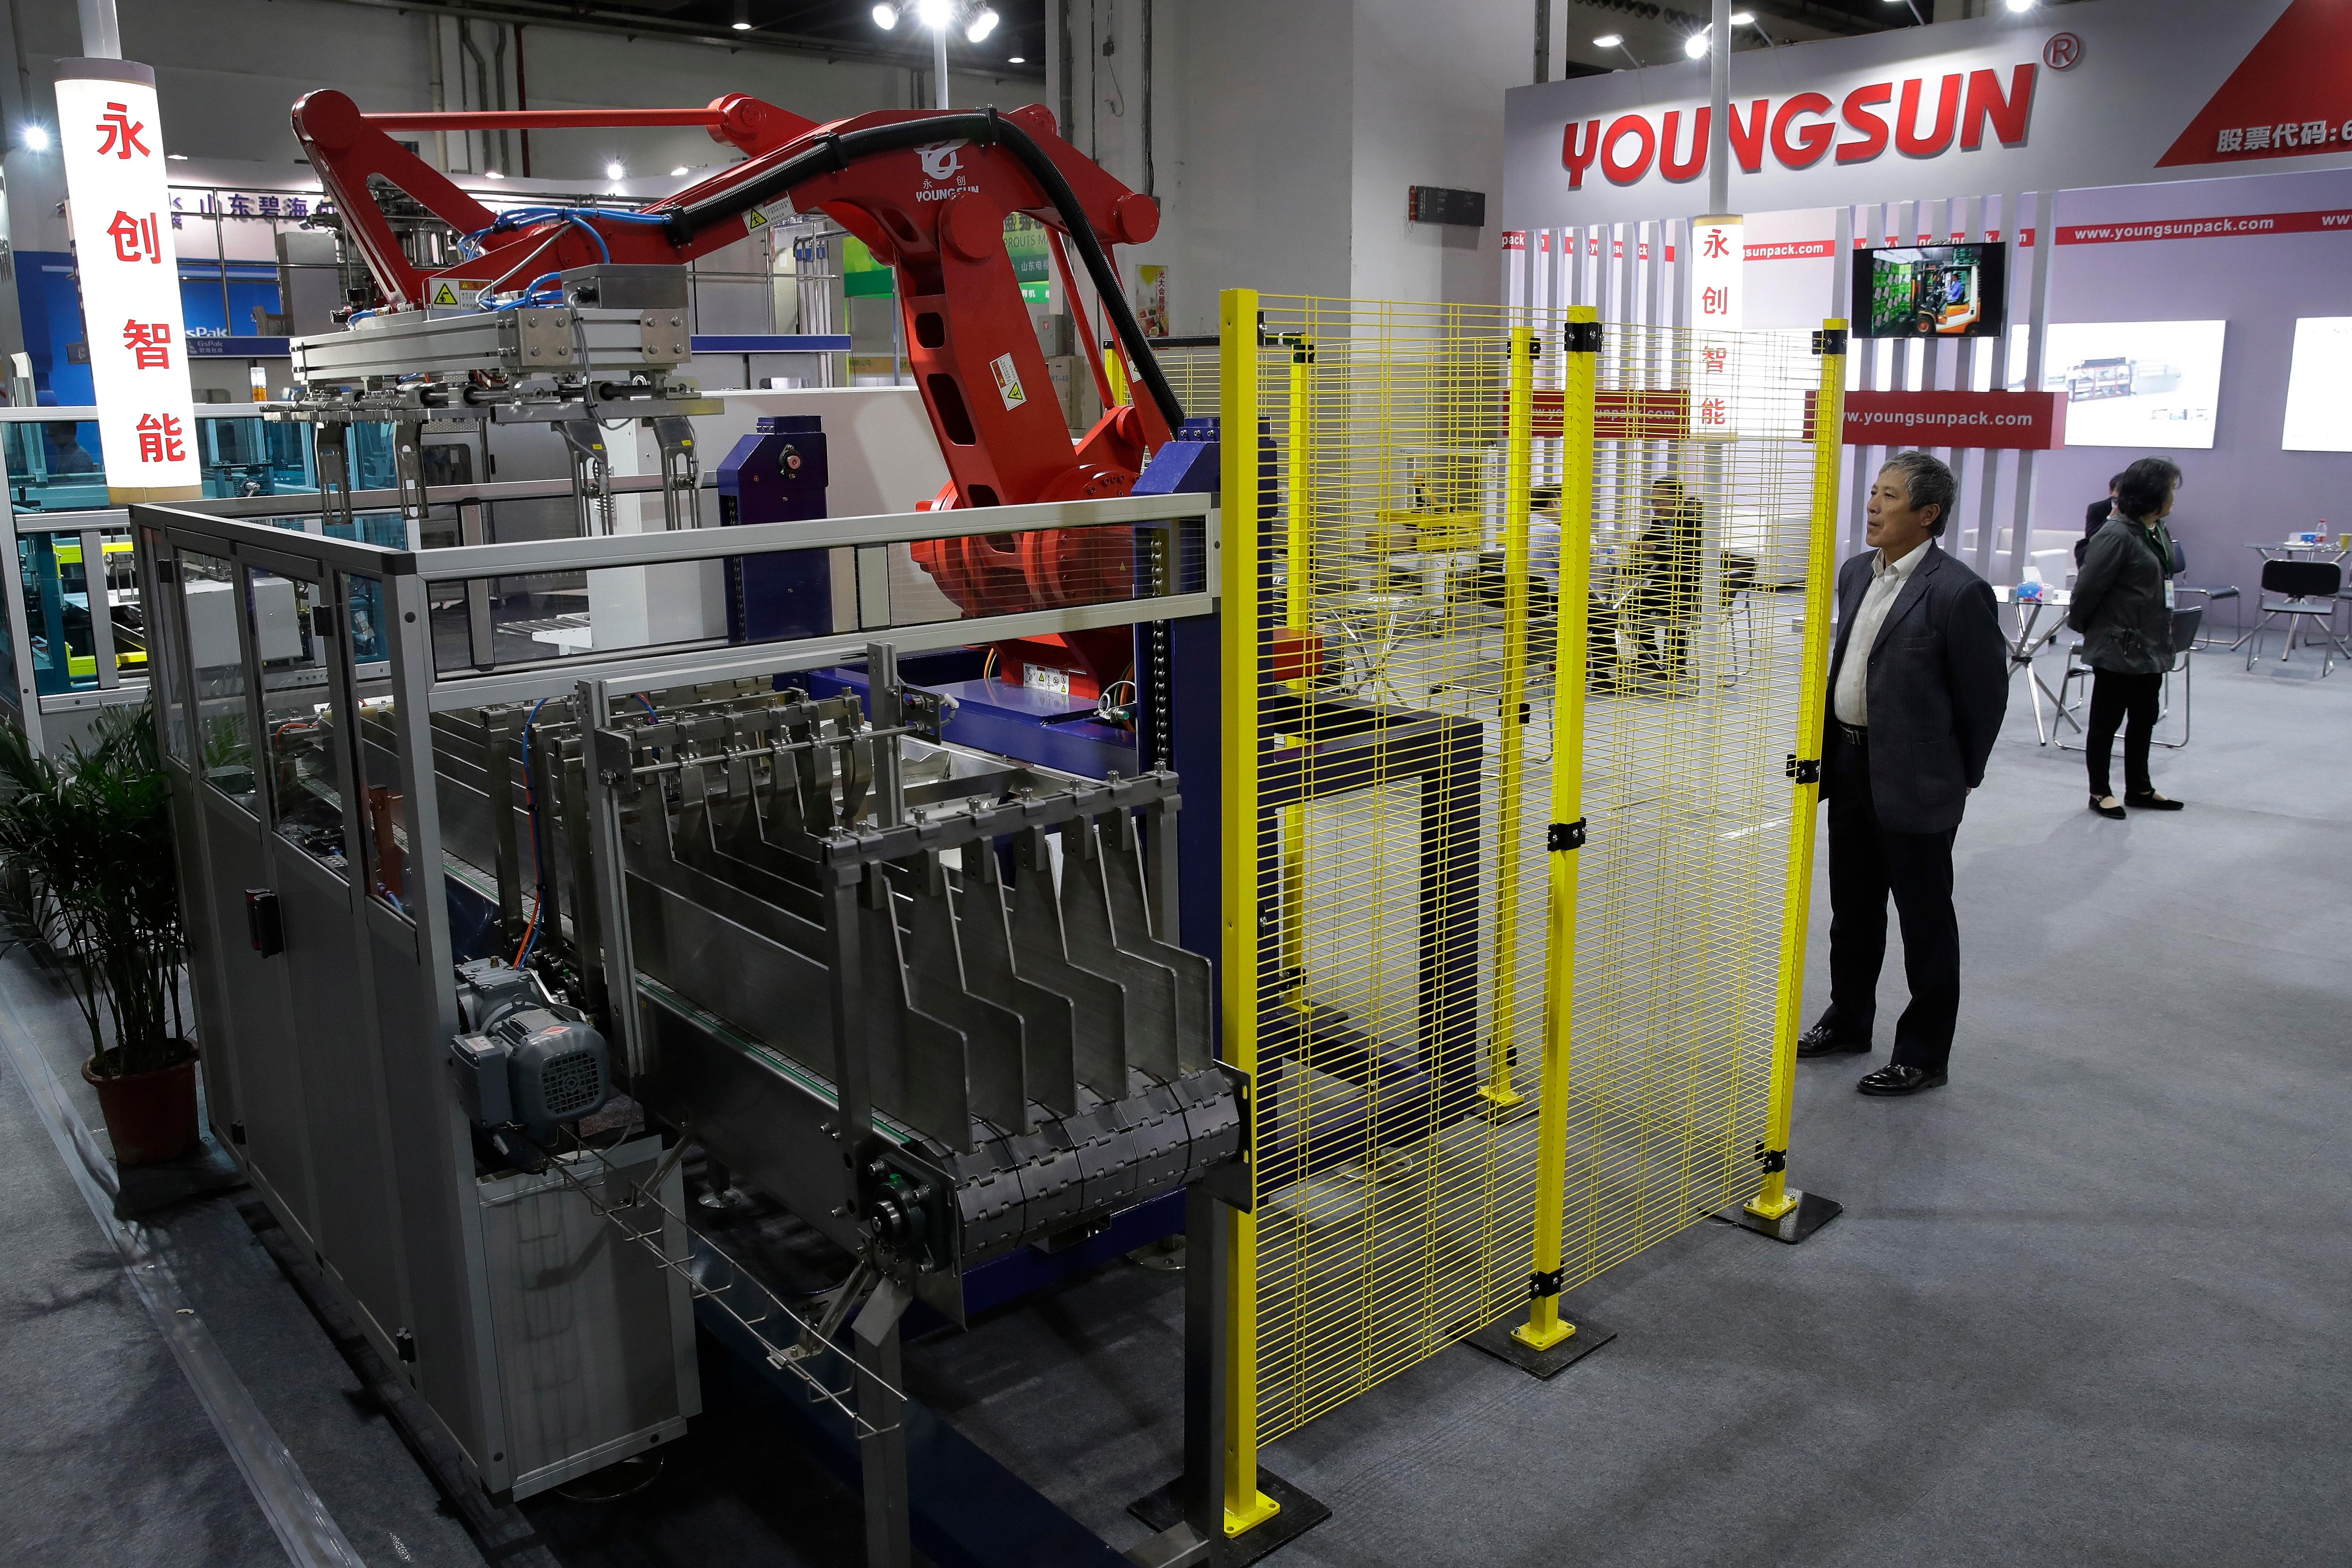 A man watches a Chinese company displaying a Chinese-made industrial robot demonstration on processing soybean at the International soybean exhibition in Shanghai, Thursday, April 12, 2018. China's government has denied President Xi Jinping's promises this week to cut import tariffs on cars and open China's markets wider were intended as an overture to settle a tariff dispute with Washington. A commerce ministry spokesman said negotiations were impossible under 'unilateral coercion' by President Donald Trump's government. (AP Photo/Andy Wong)